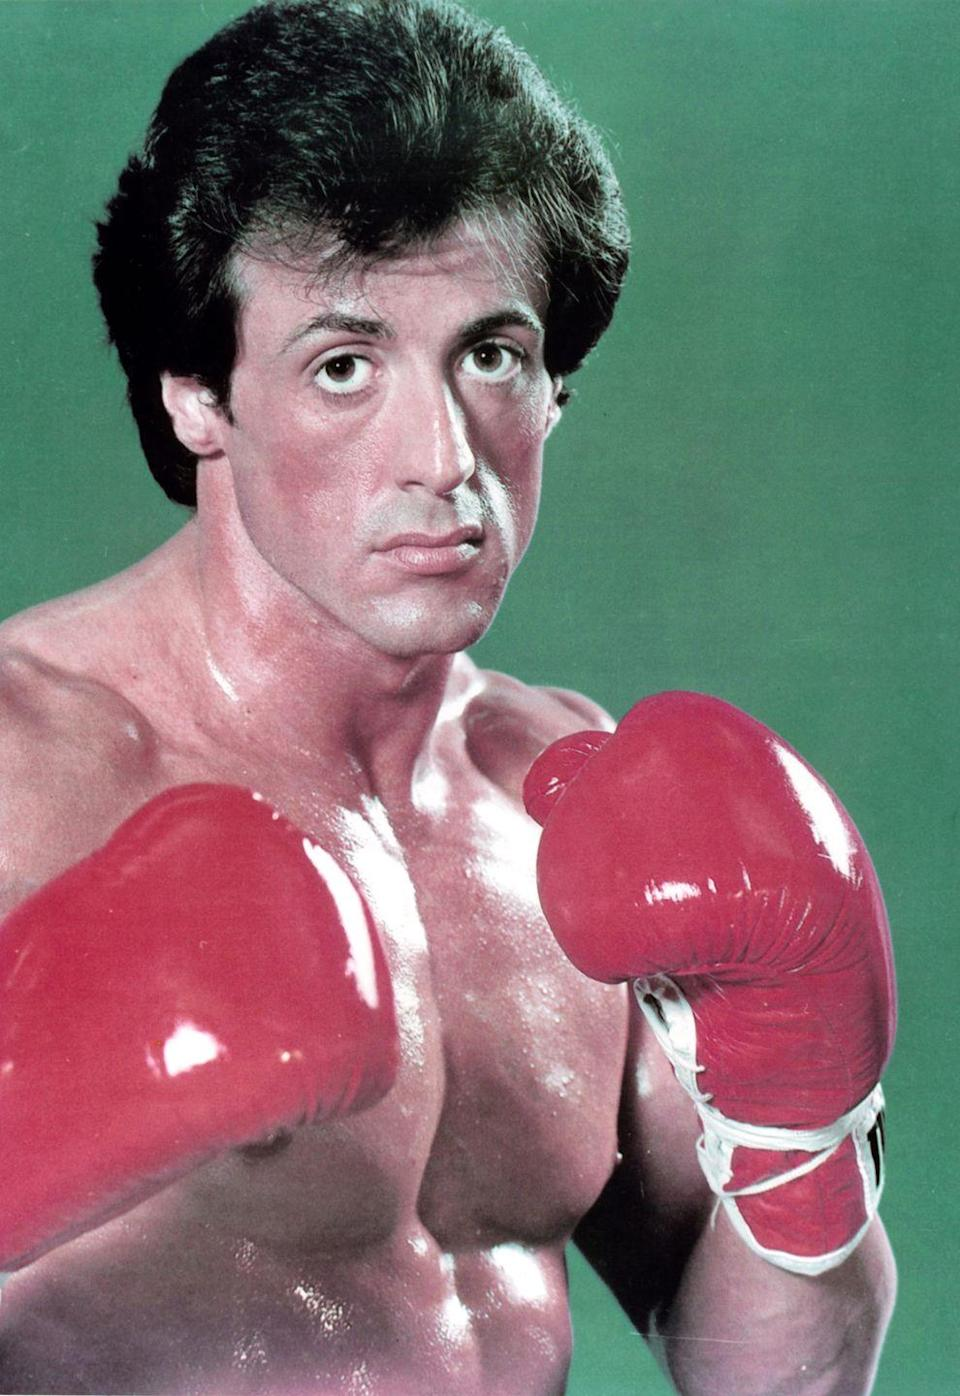 <p>Stallone has been playing Rocky Balboa since 1976. The latest installment in the legendary boxing series, Creed II, hits theaters in November, 2018.</p>